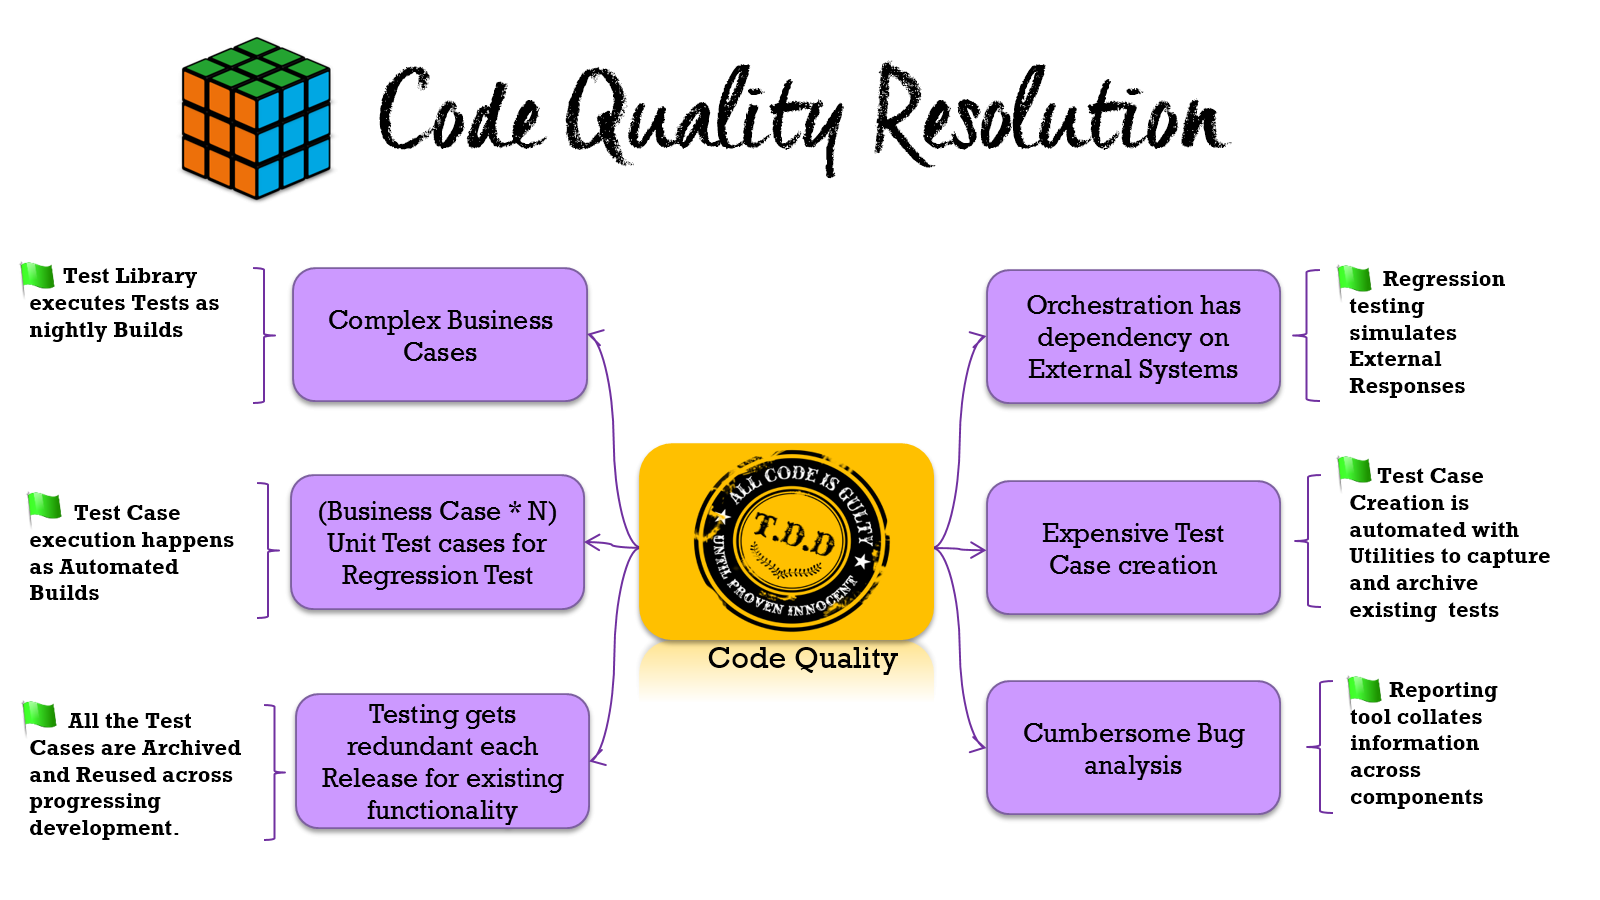 Oracle SOA Code Quality Resolution.